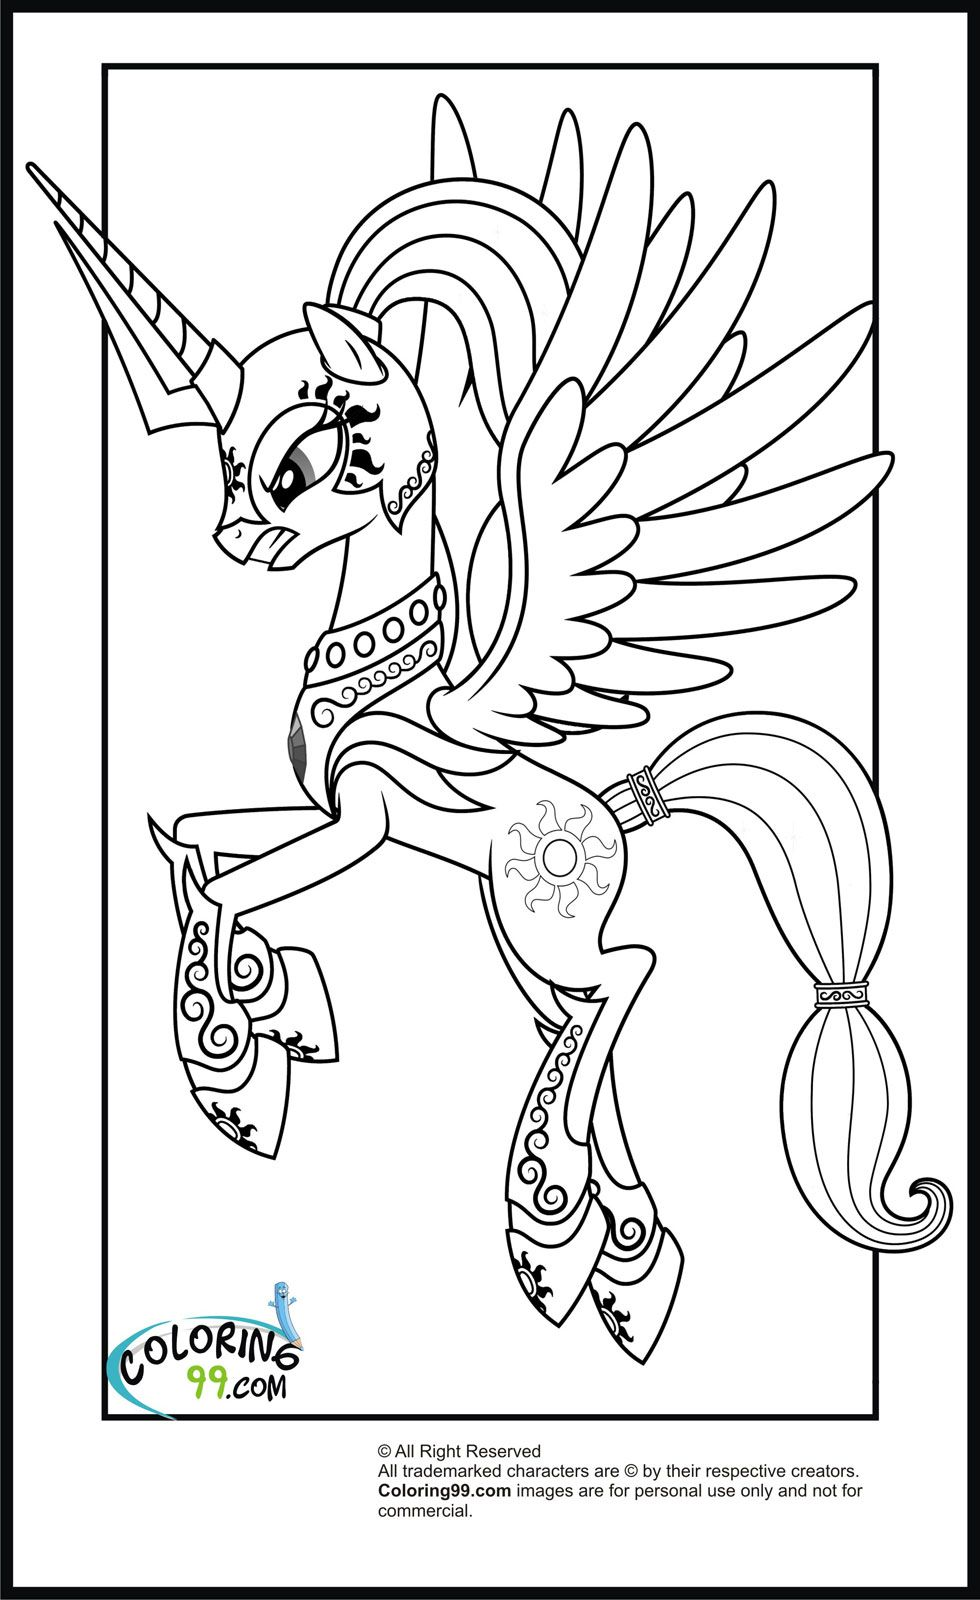 My little pony friendship magic coloring pages print - My Little Pony Coloring Pages My Little Pony Princess Celestia Coloring Pages